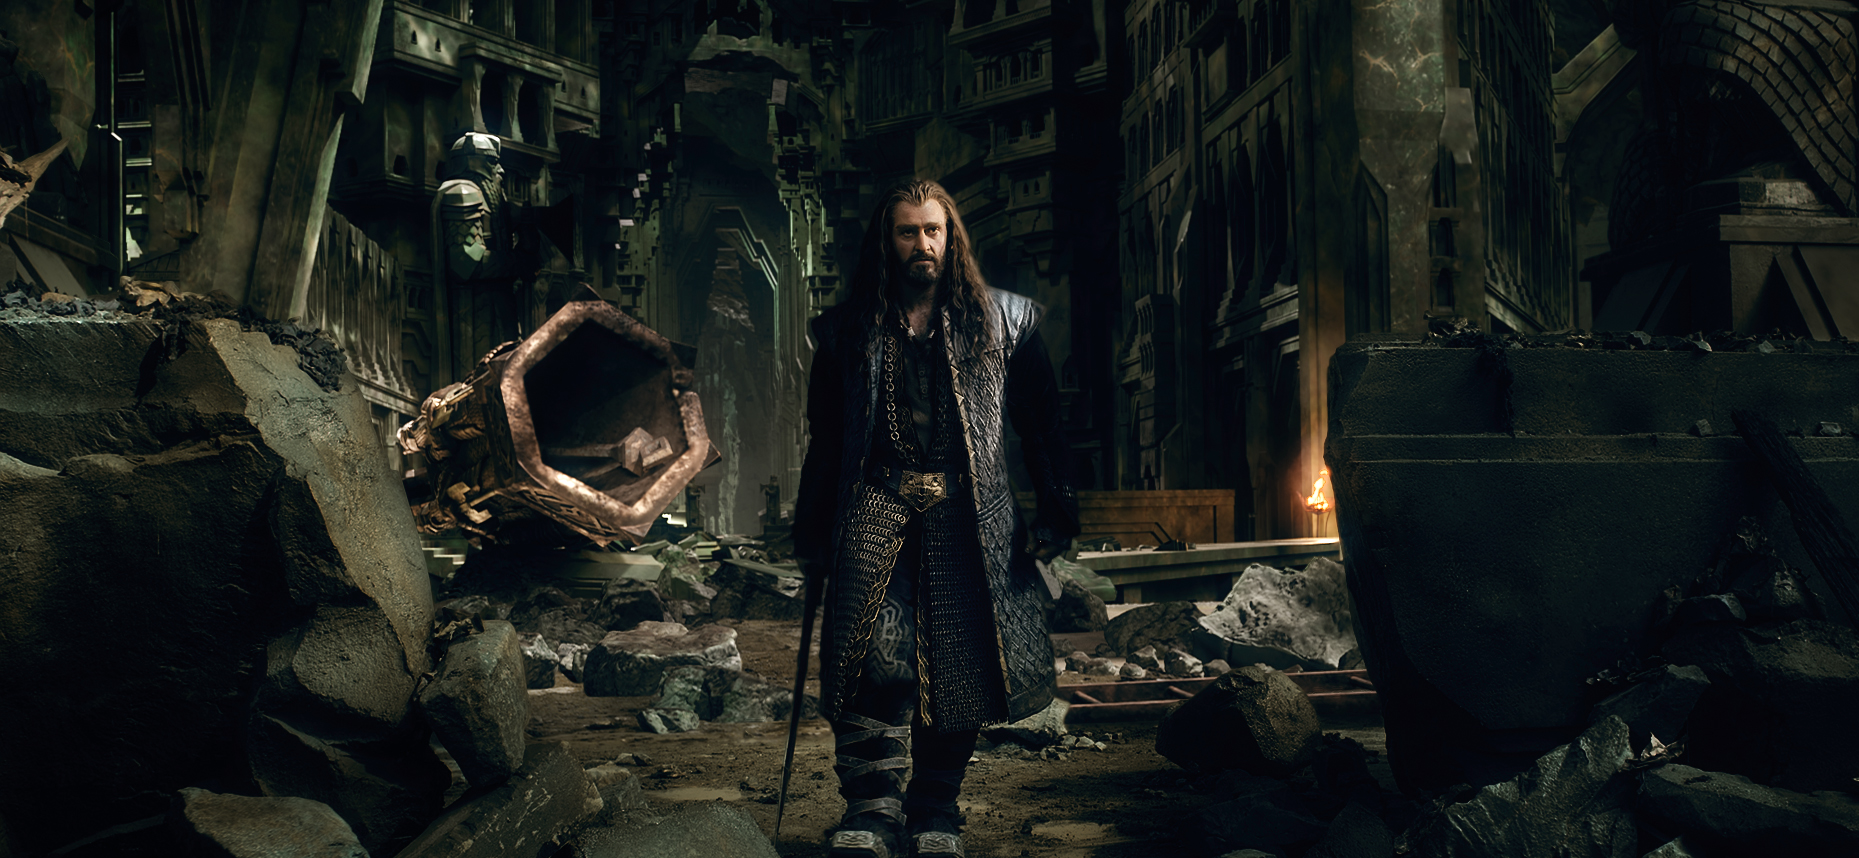 More on the running time for The Hobbit: The Battle of the ...